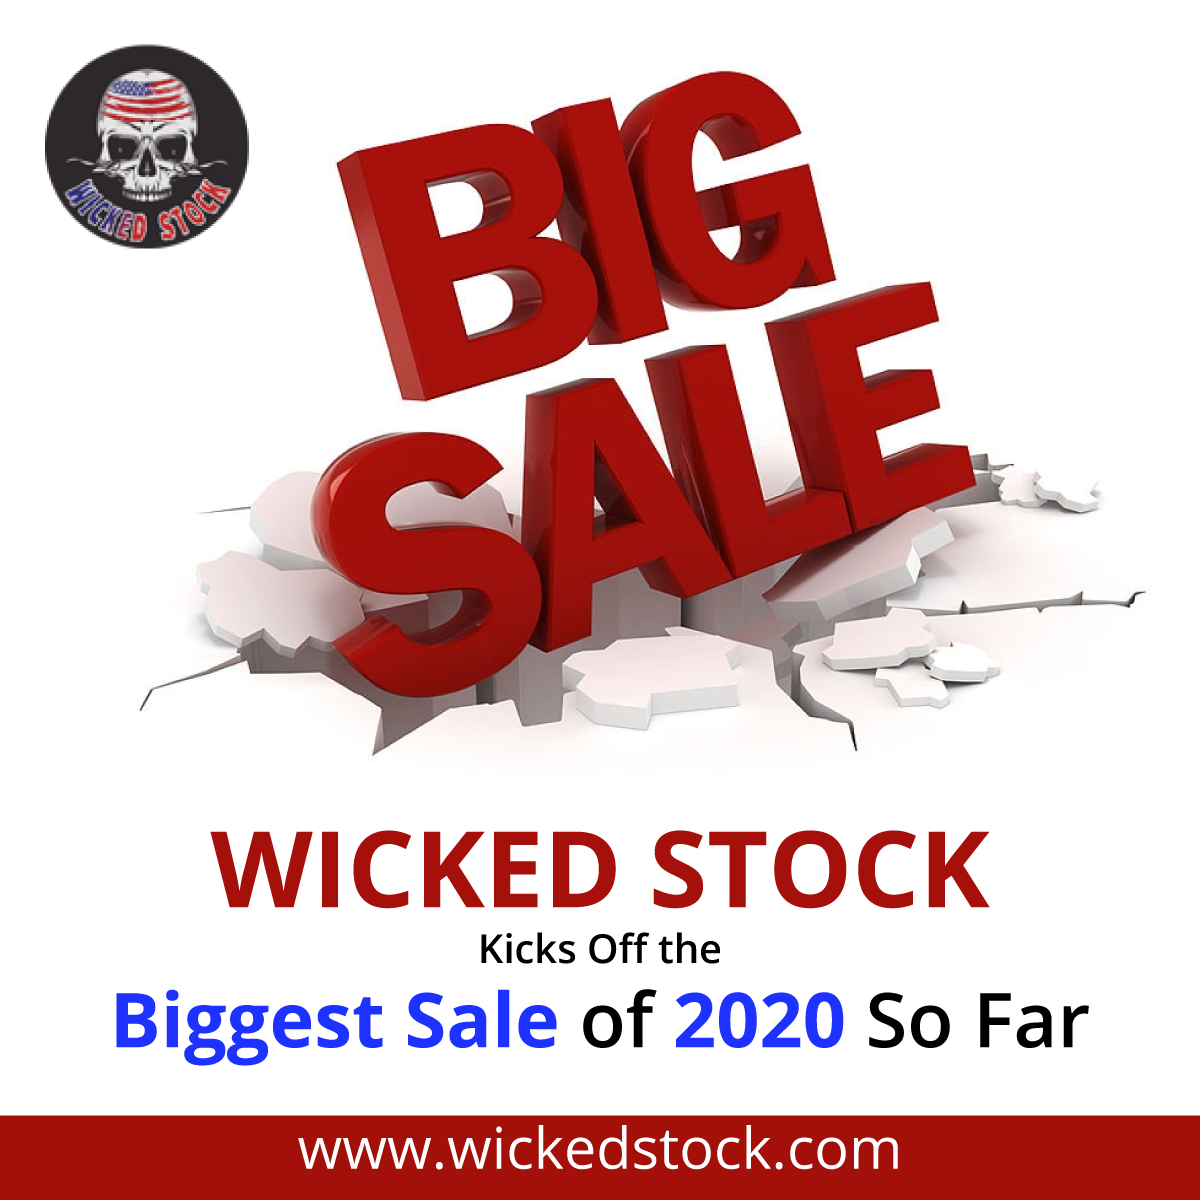 WICKED STOCK Kicks Off the Biggest Sale of 2020 So Far